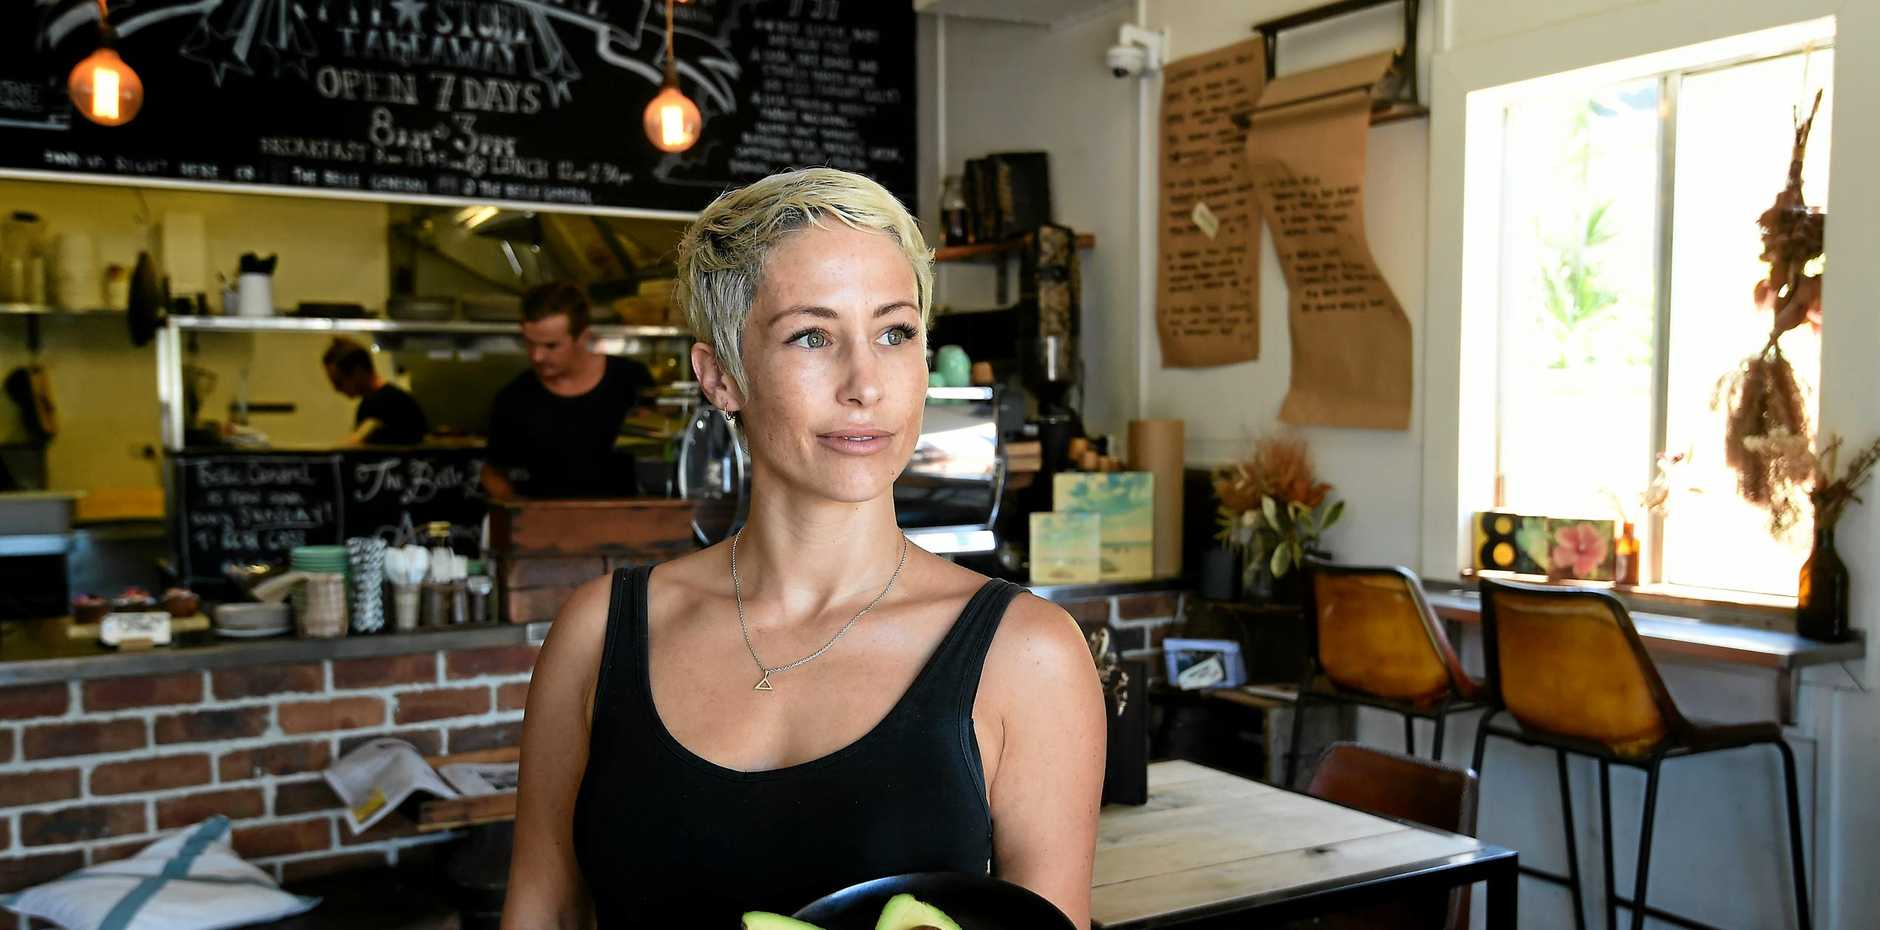 The Belle General owner Kyla Plummer said they had never seen prices for avocados as high as in January 2018 where demand had outstripped supply.